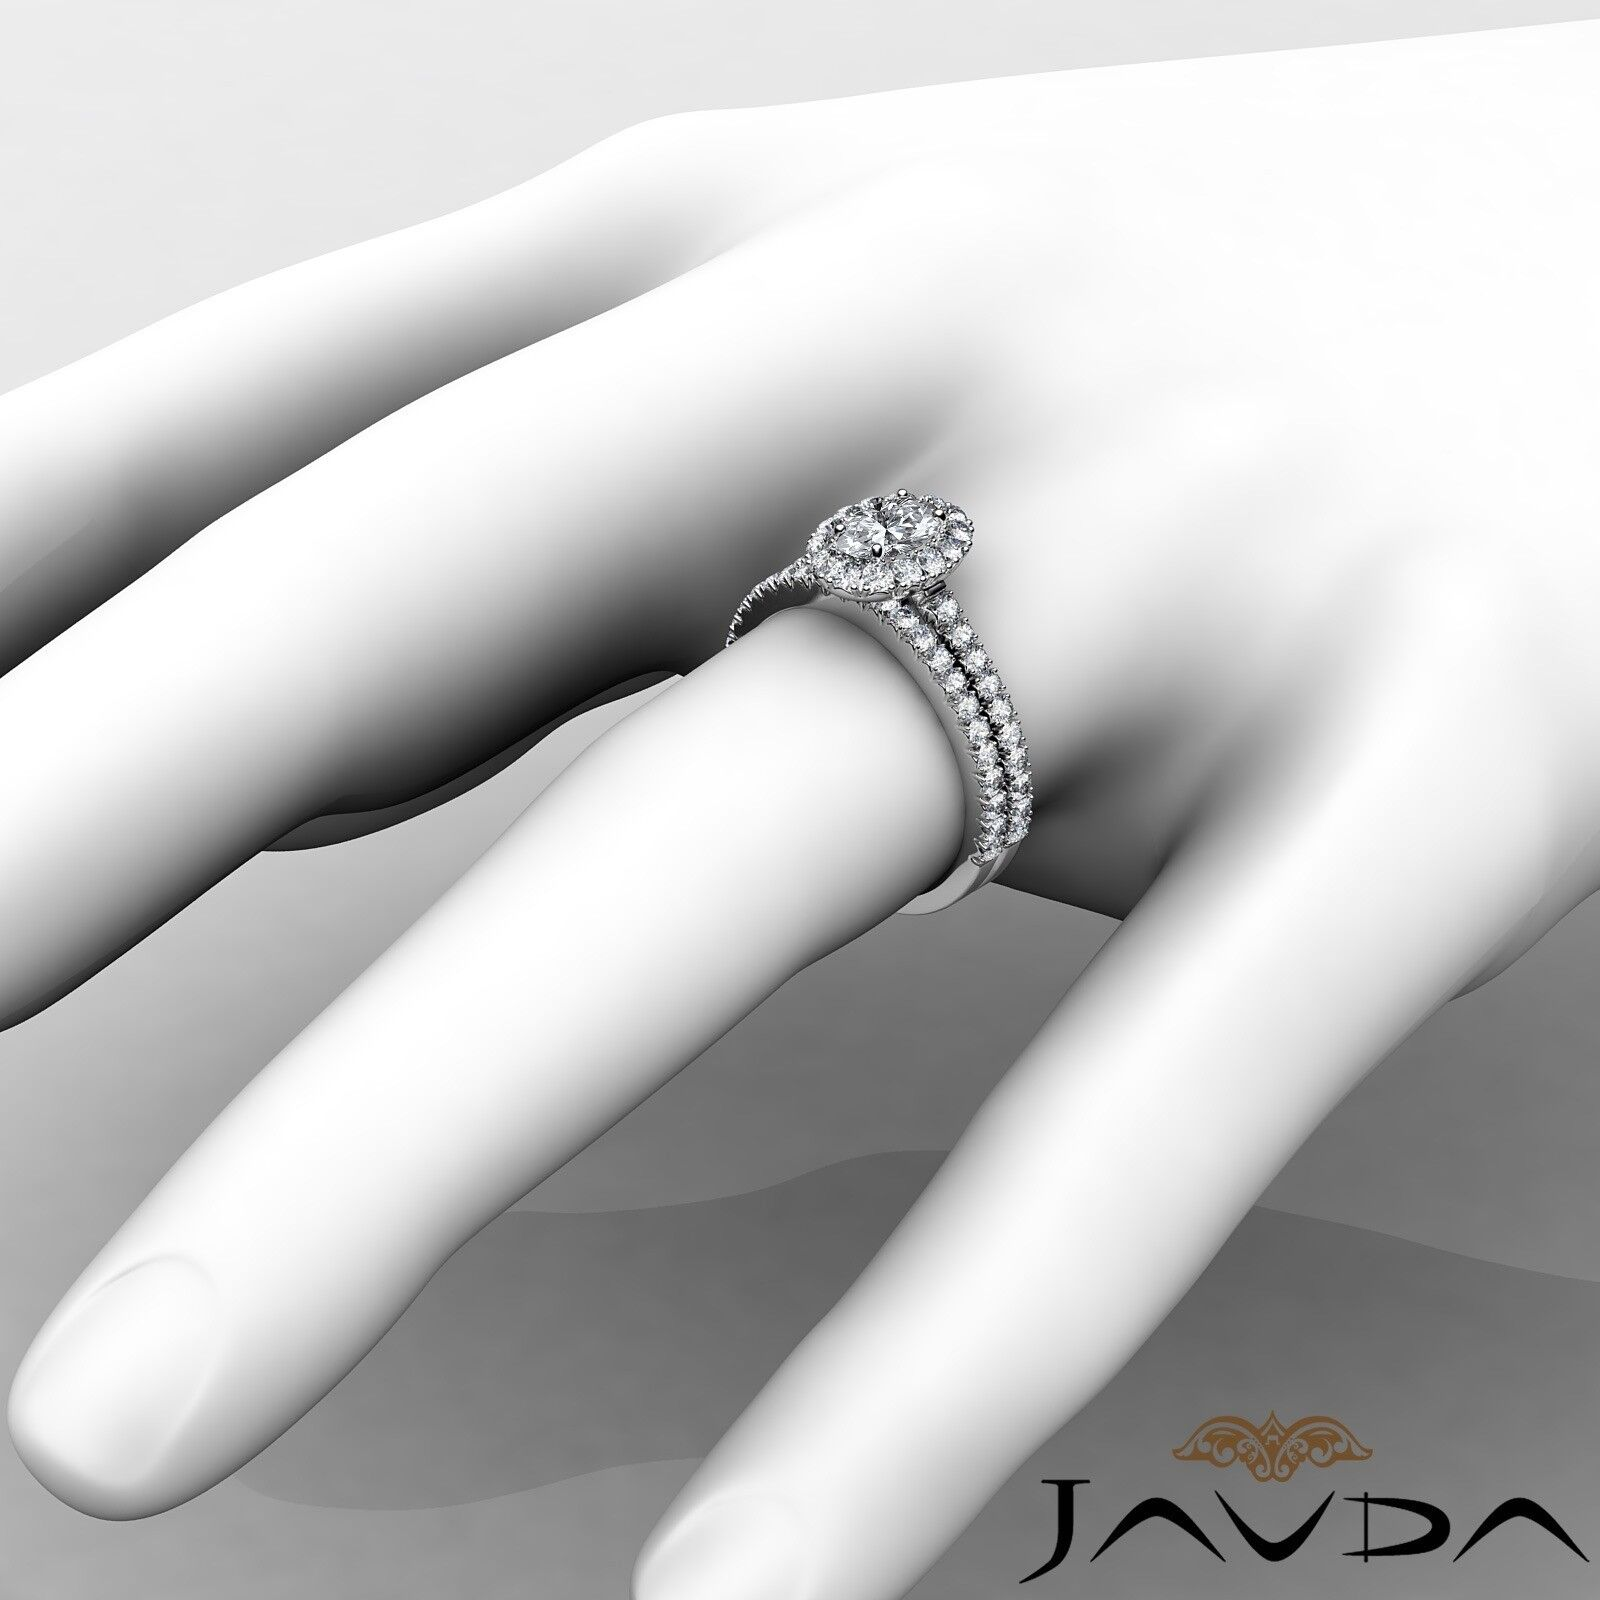 2.21ctw Halo Bridal French Pave Oval Diamond Engagement Ring GIA F-VVS2 W Gold 4